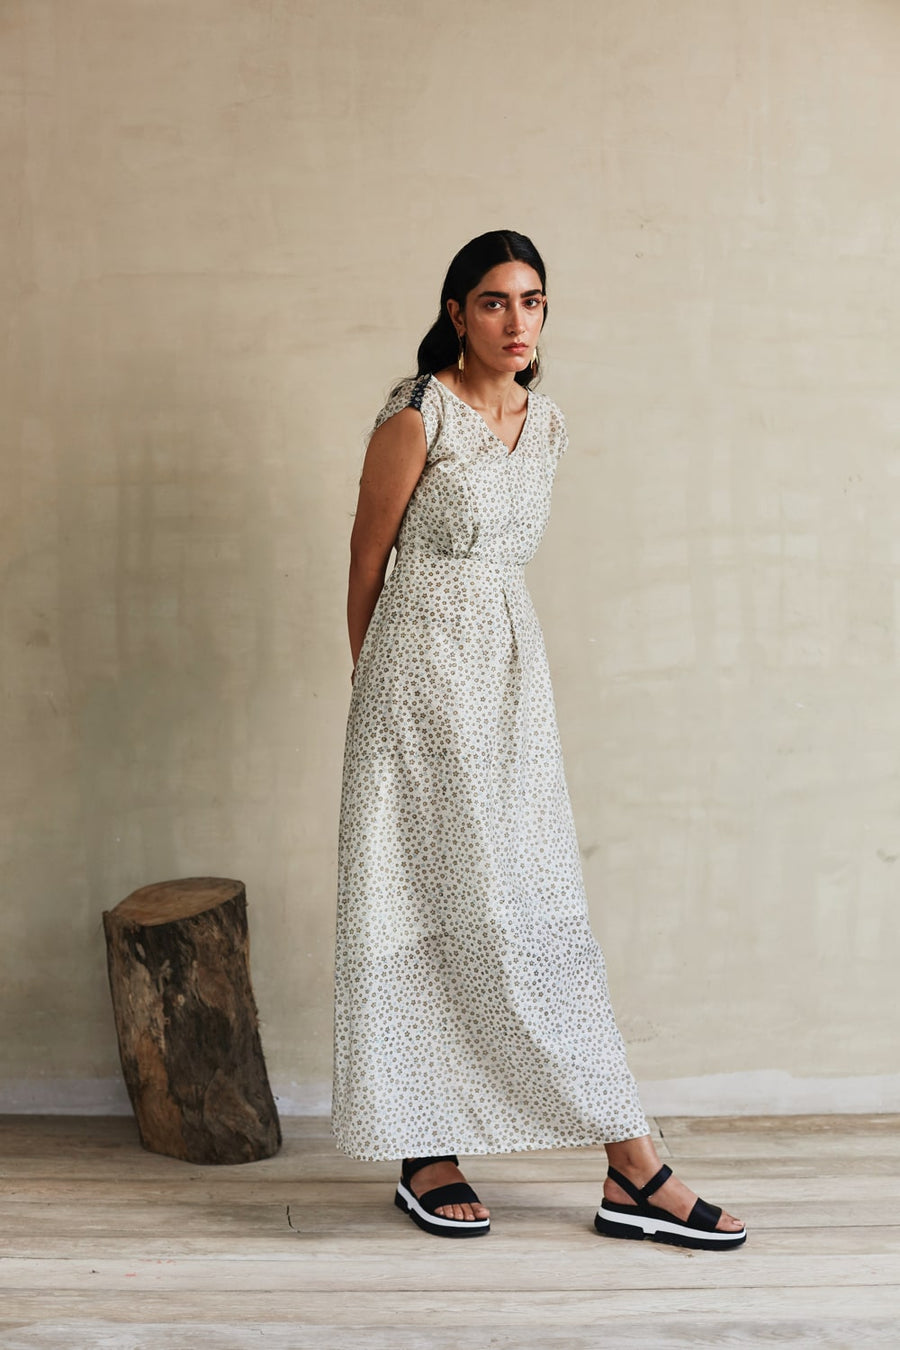 Tuscan Summer Maxi Dress - Ethical made fashion - onlyethikal